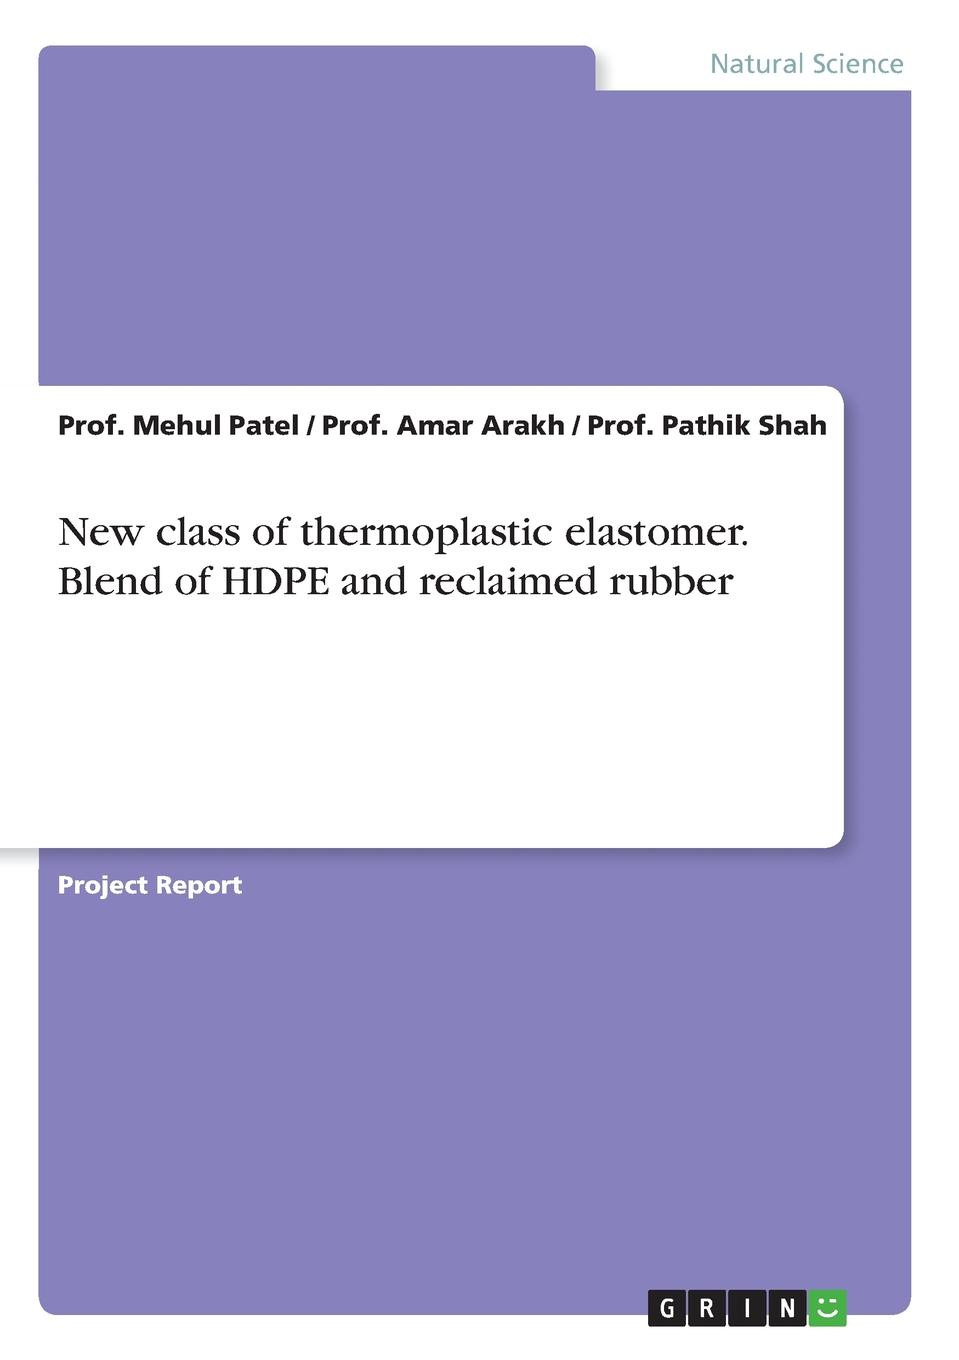 Prof. Mehul Patel, Prof. Amar Arakh, Prof. Pathik Shah New class of thermoplastic elastomer. Blend of HDPE and reclaimed rubber kevin henke arsenic environmental chemistry health threats and waste treatment